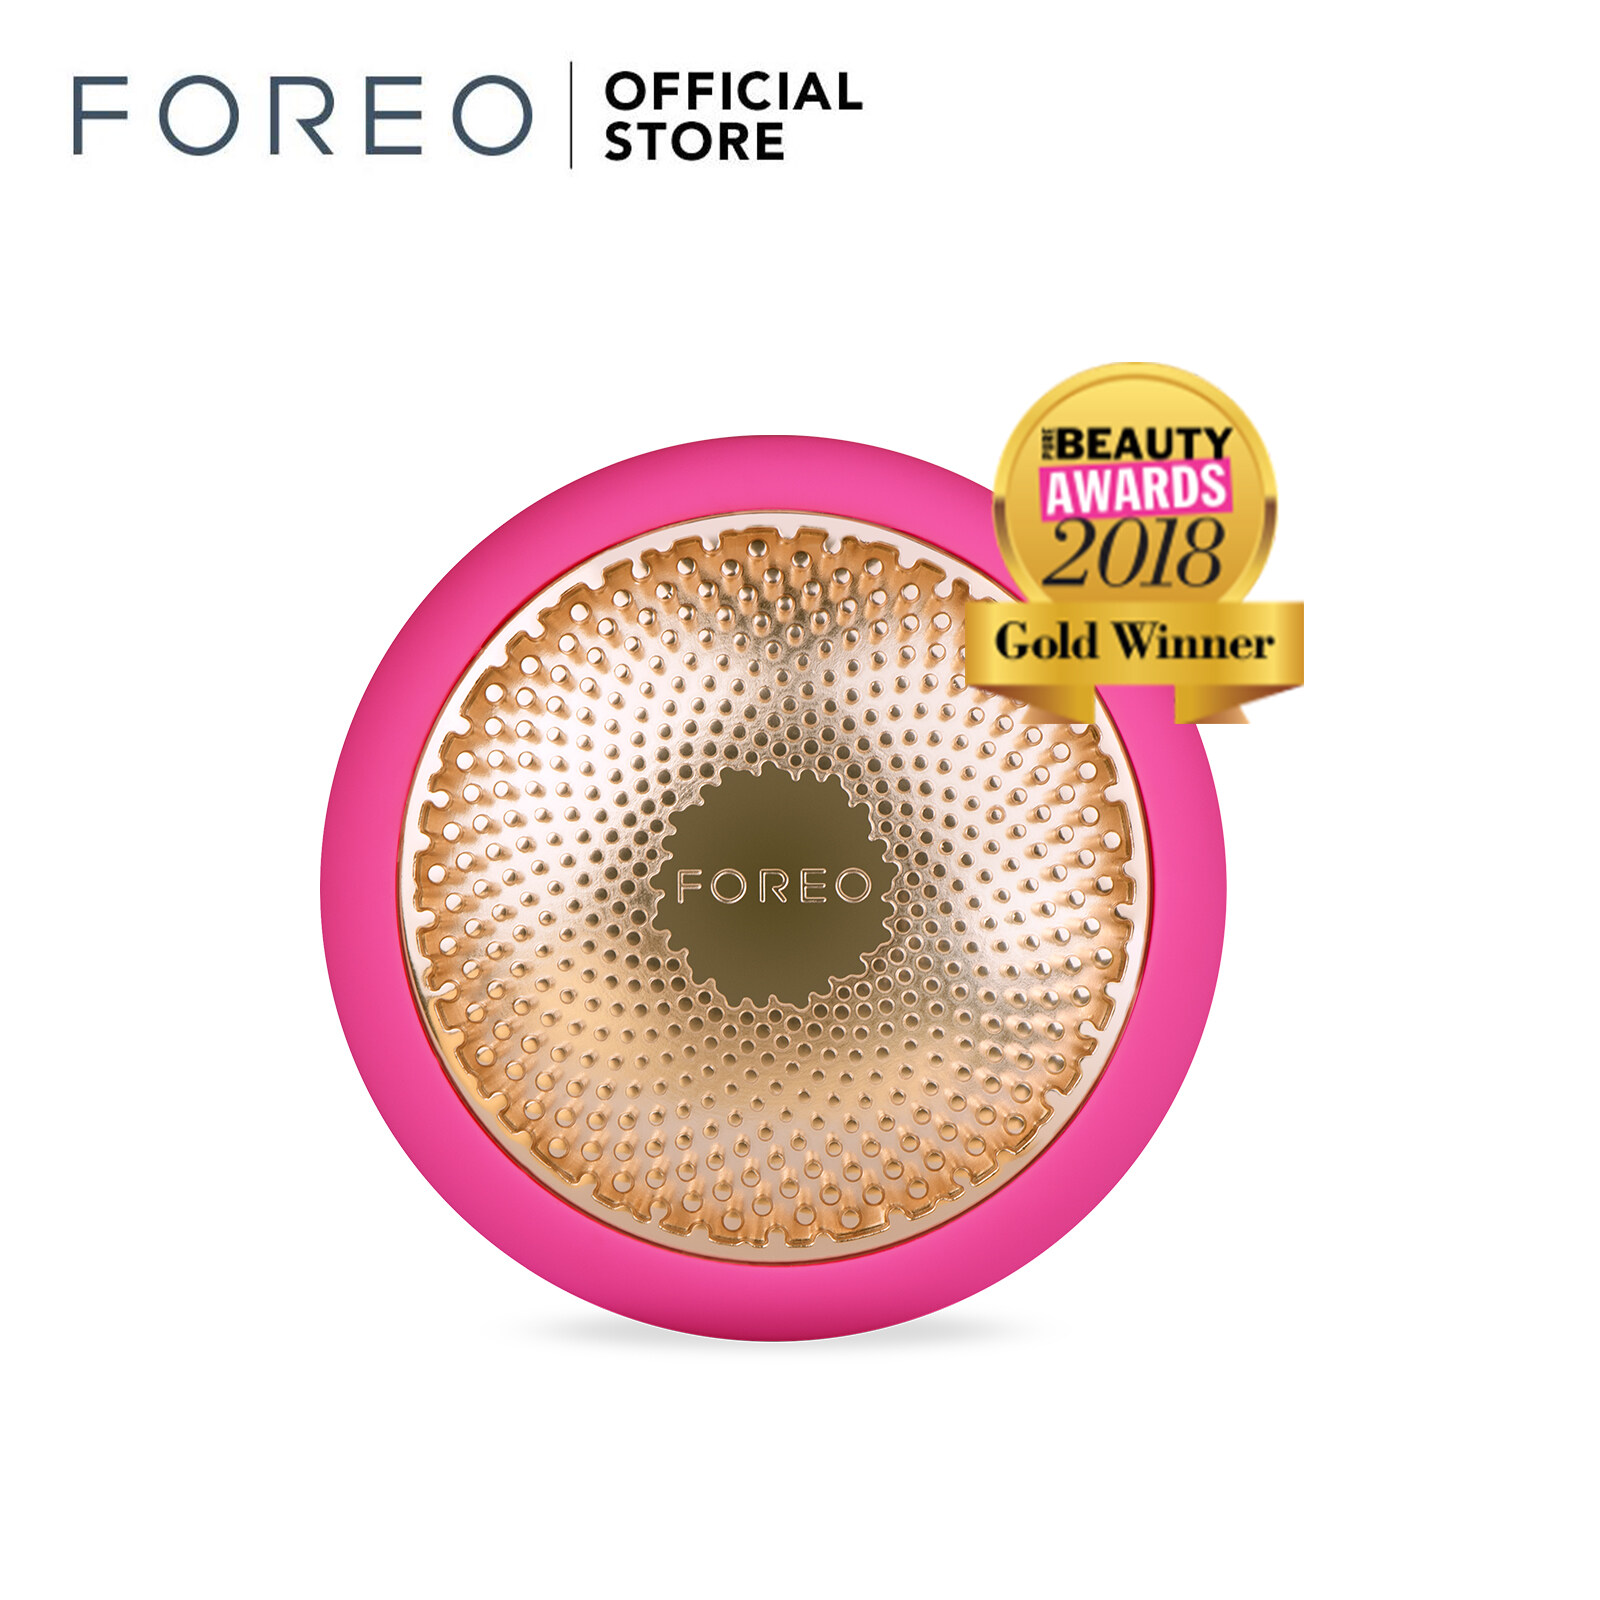 Foreo Ufo Led Light Waterproof And Rechargeable Portable App Connected Rechargeable T Sonic Heat And Cool Facial Mask Massager Treatment Device For Face Lifting Tightening And Anti Ageing Home Spa Fuchsia